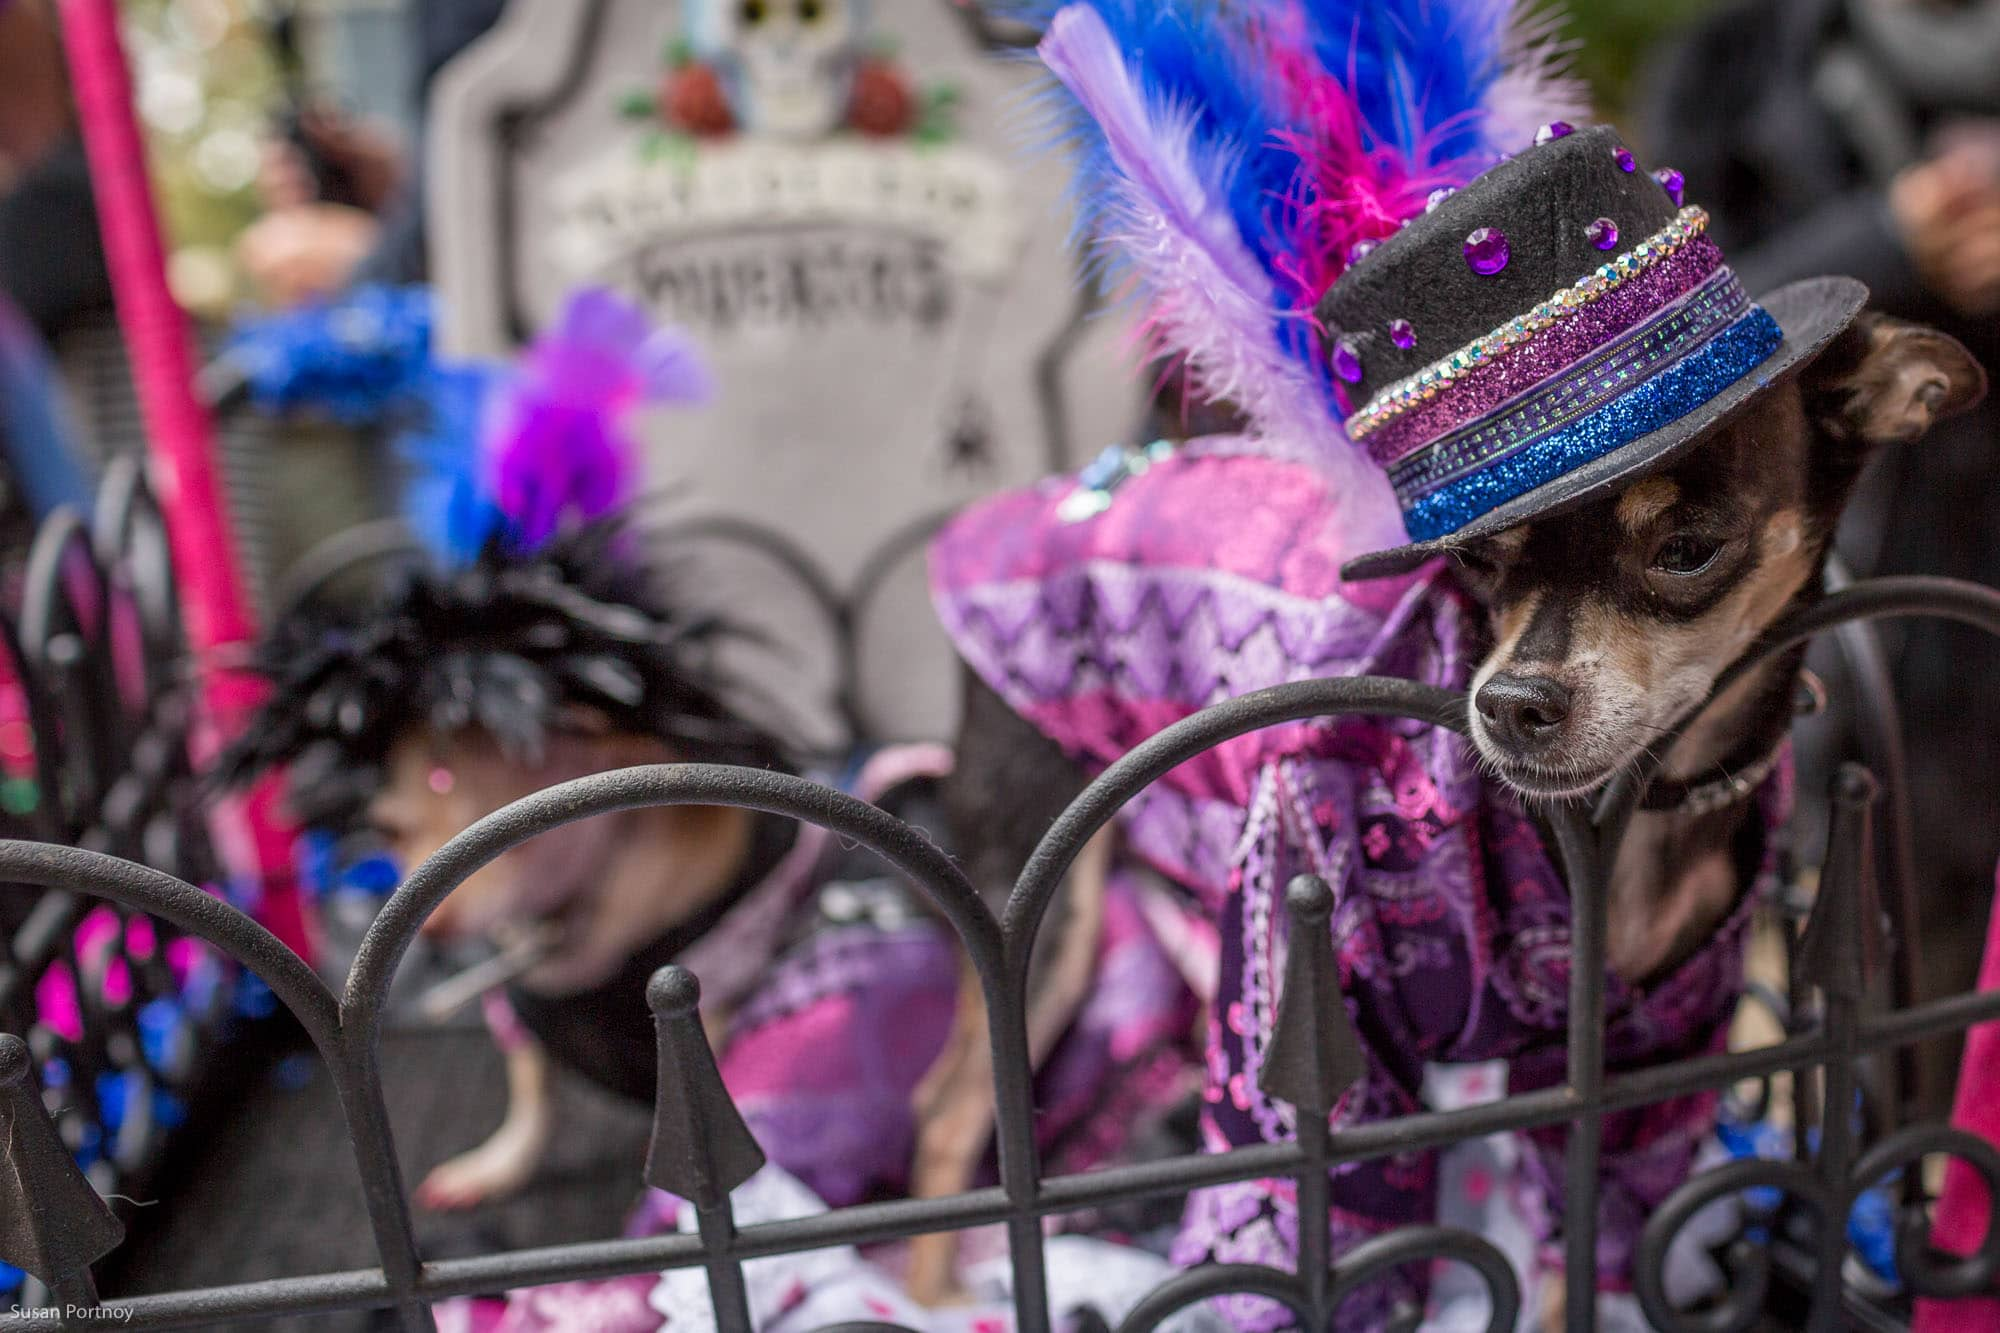 Doggie Halloween in Tompkins Square Park